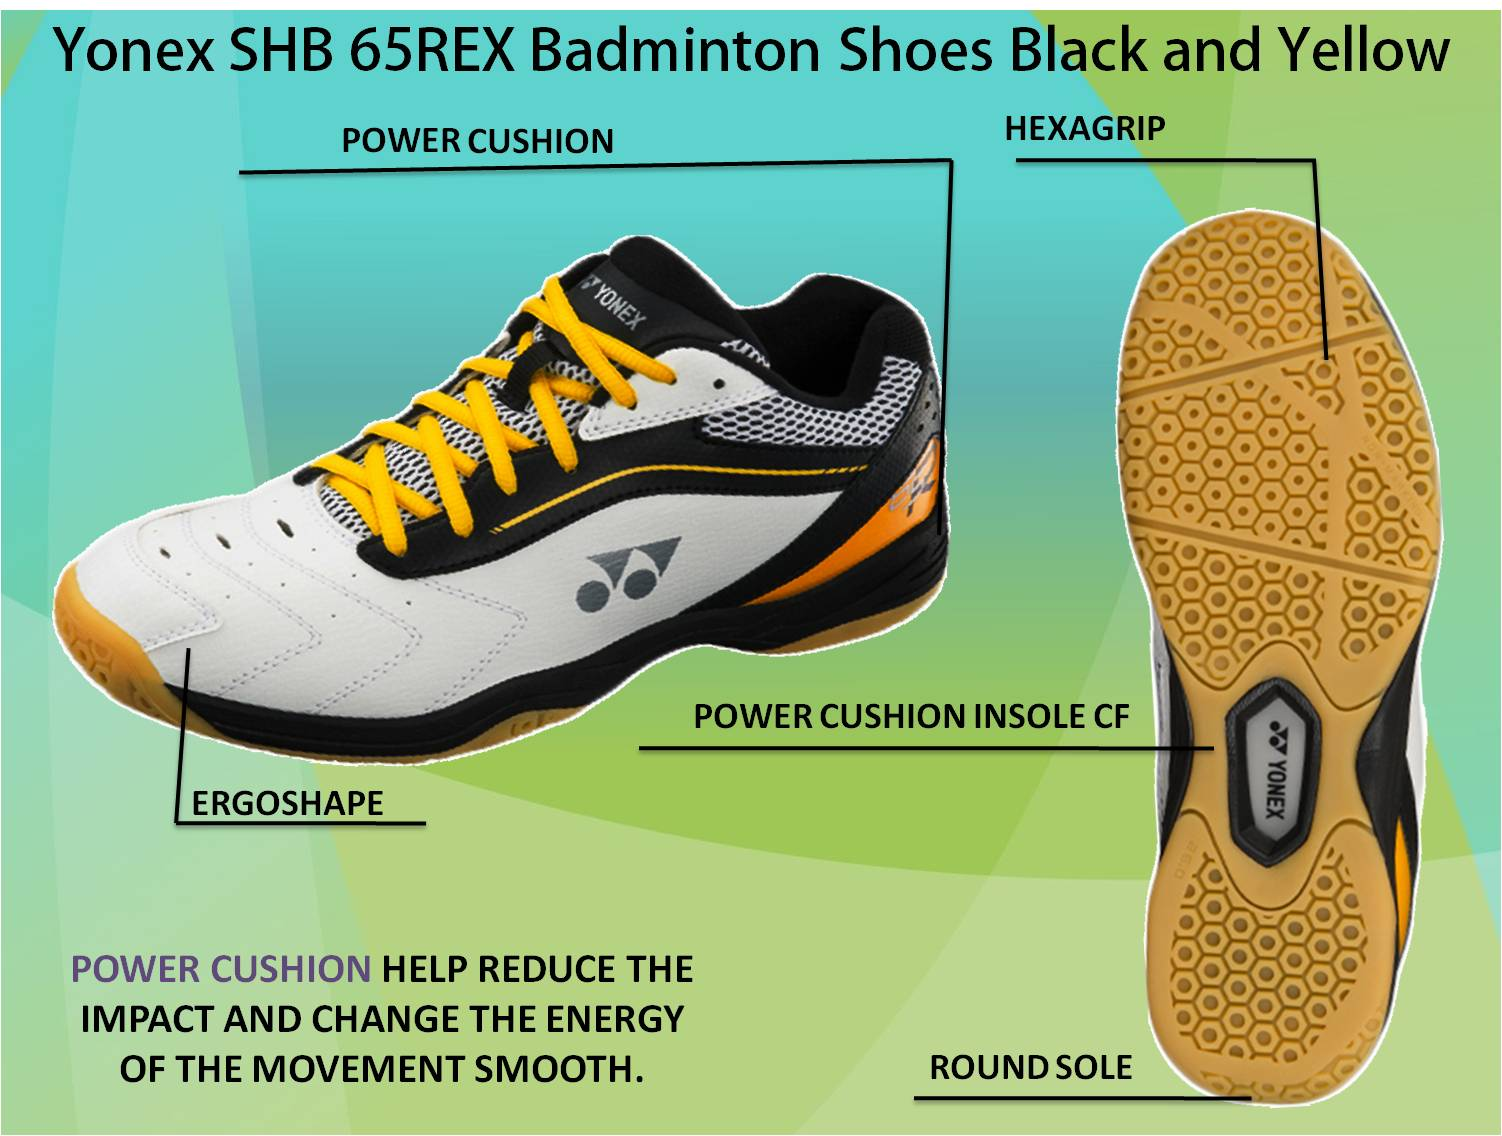 Yonex SHB 65 REX Badminton Shoes Black and Yellow